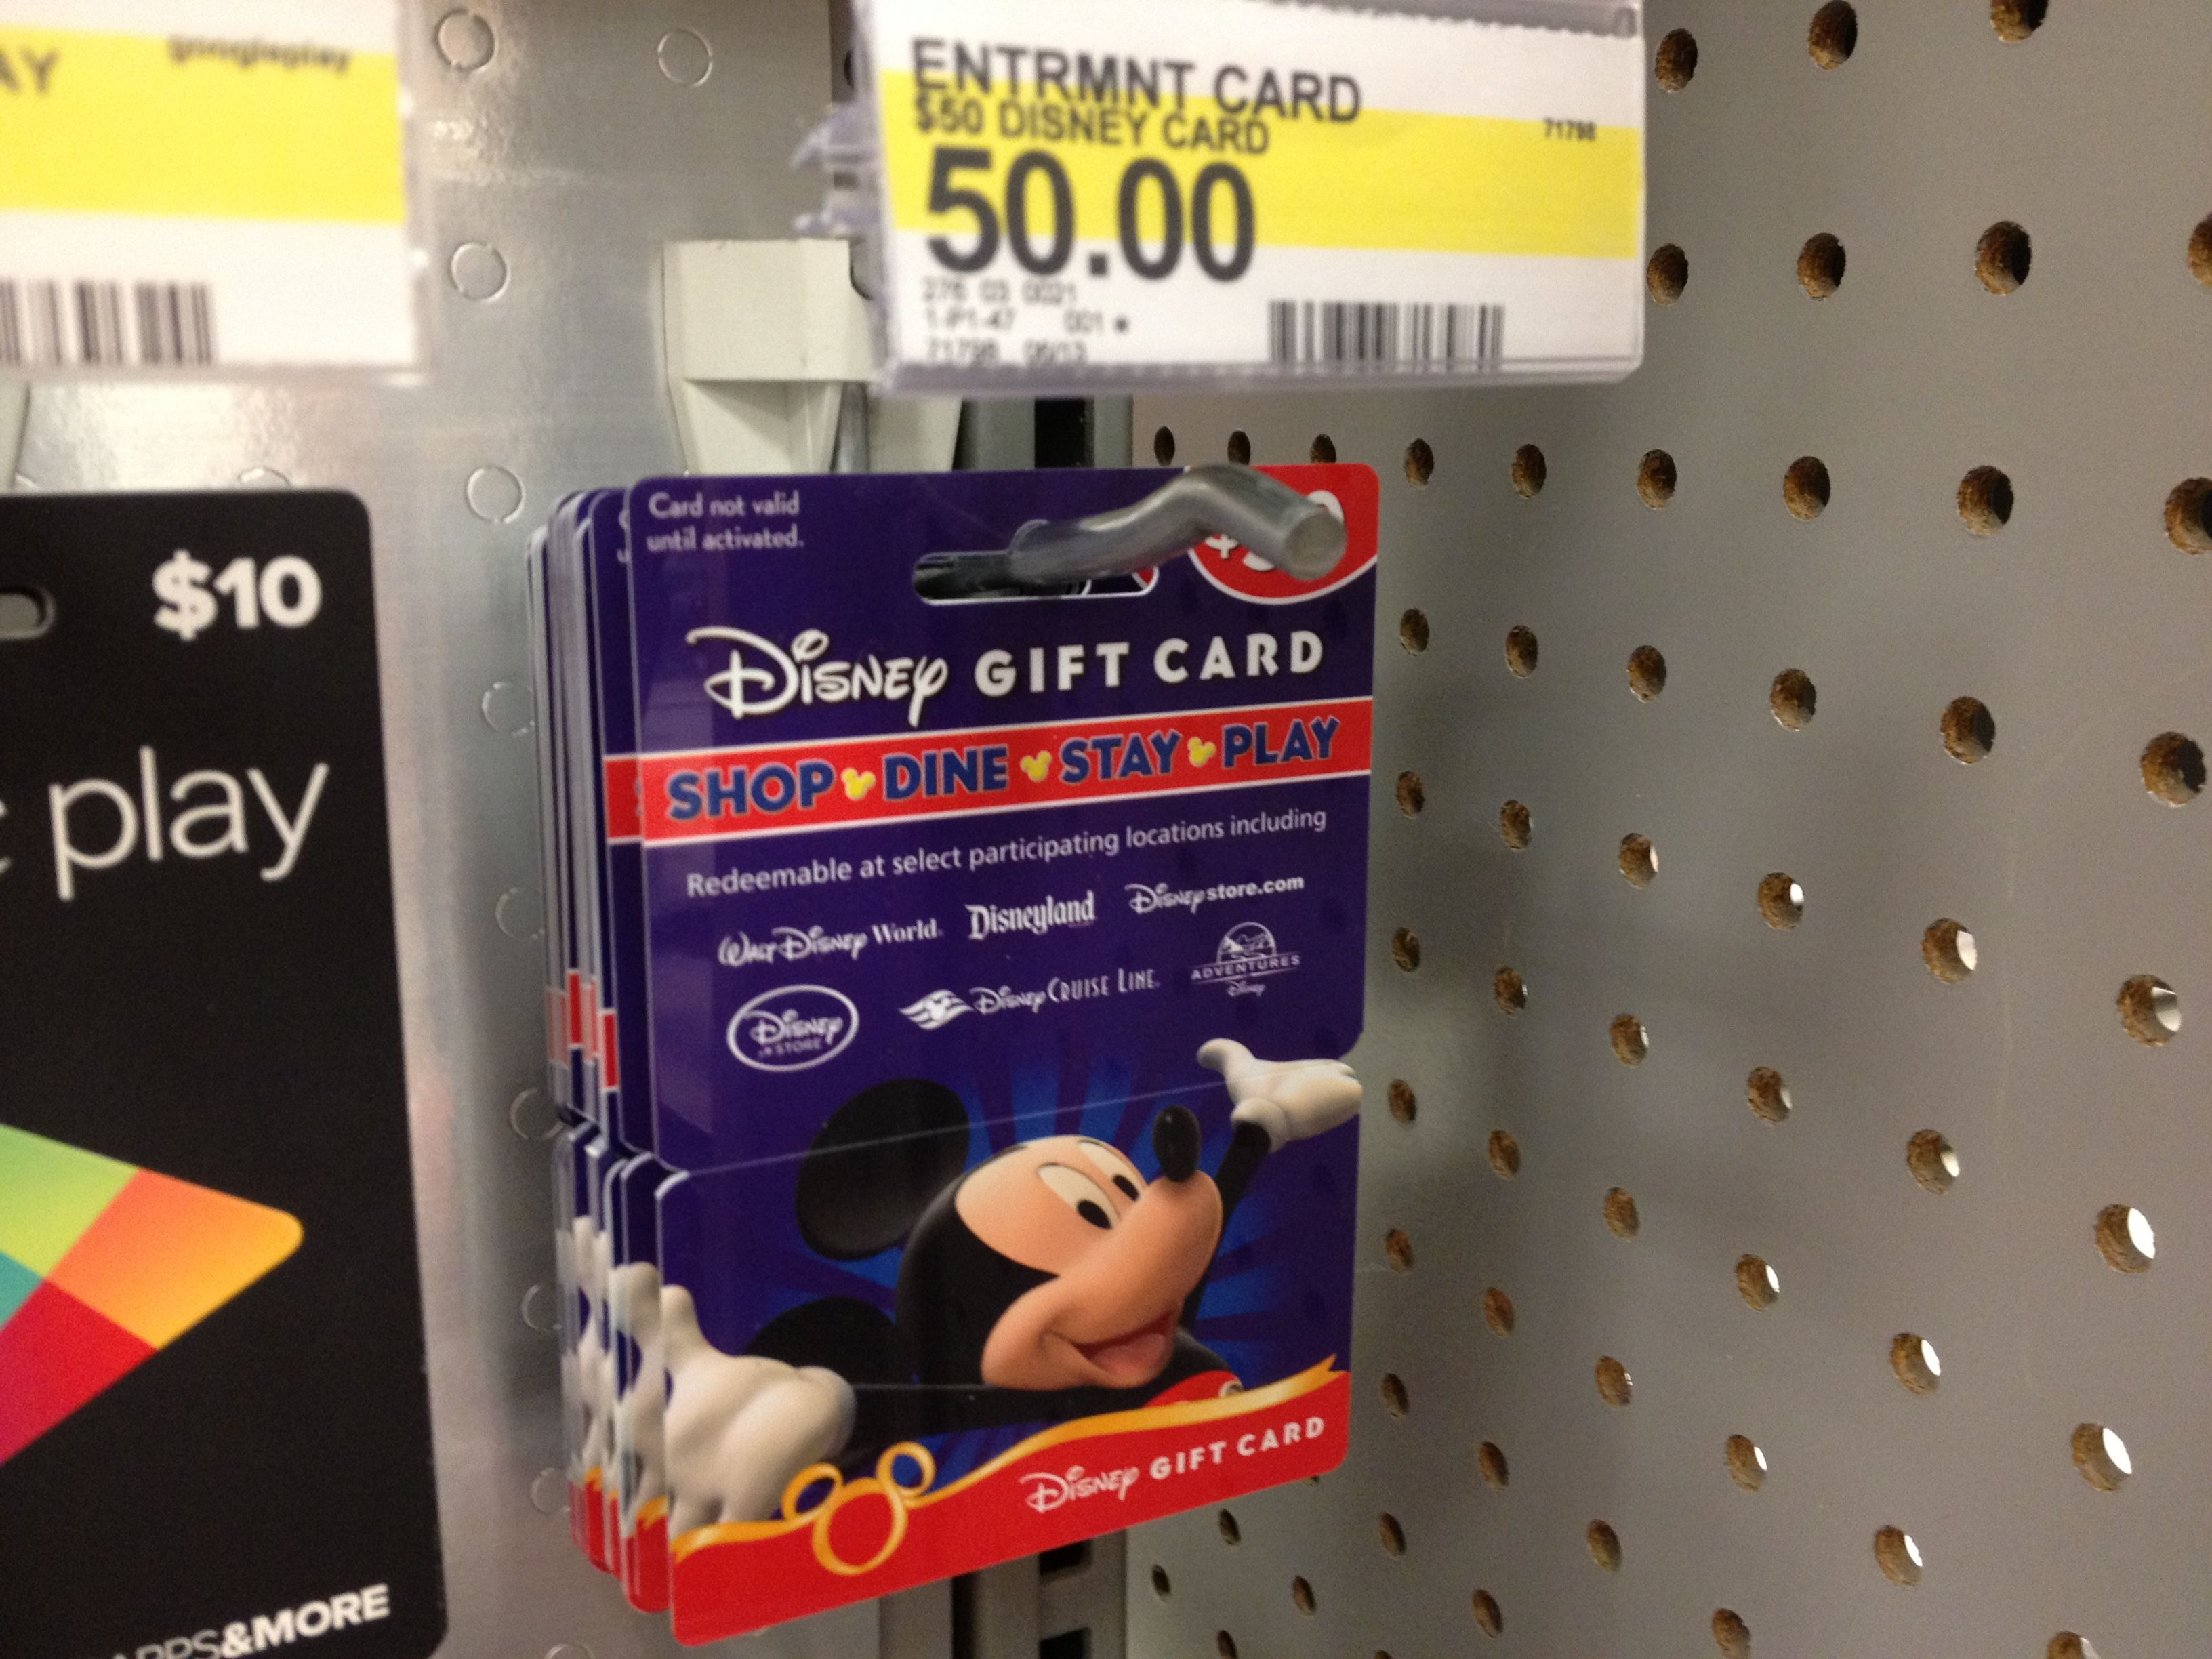 Get discounted disney gift cards with target red card